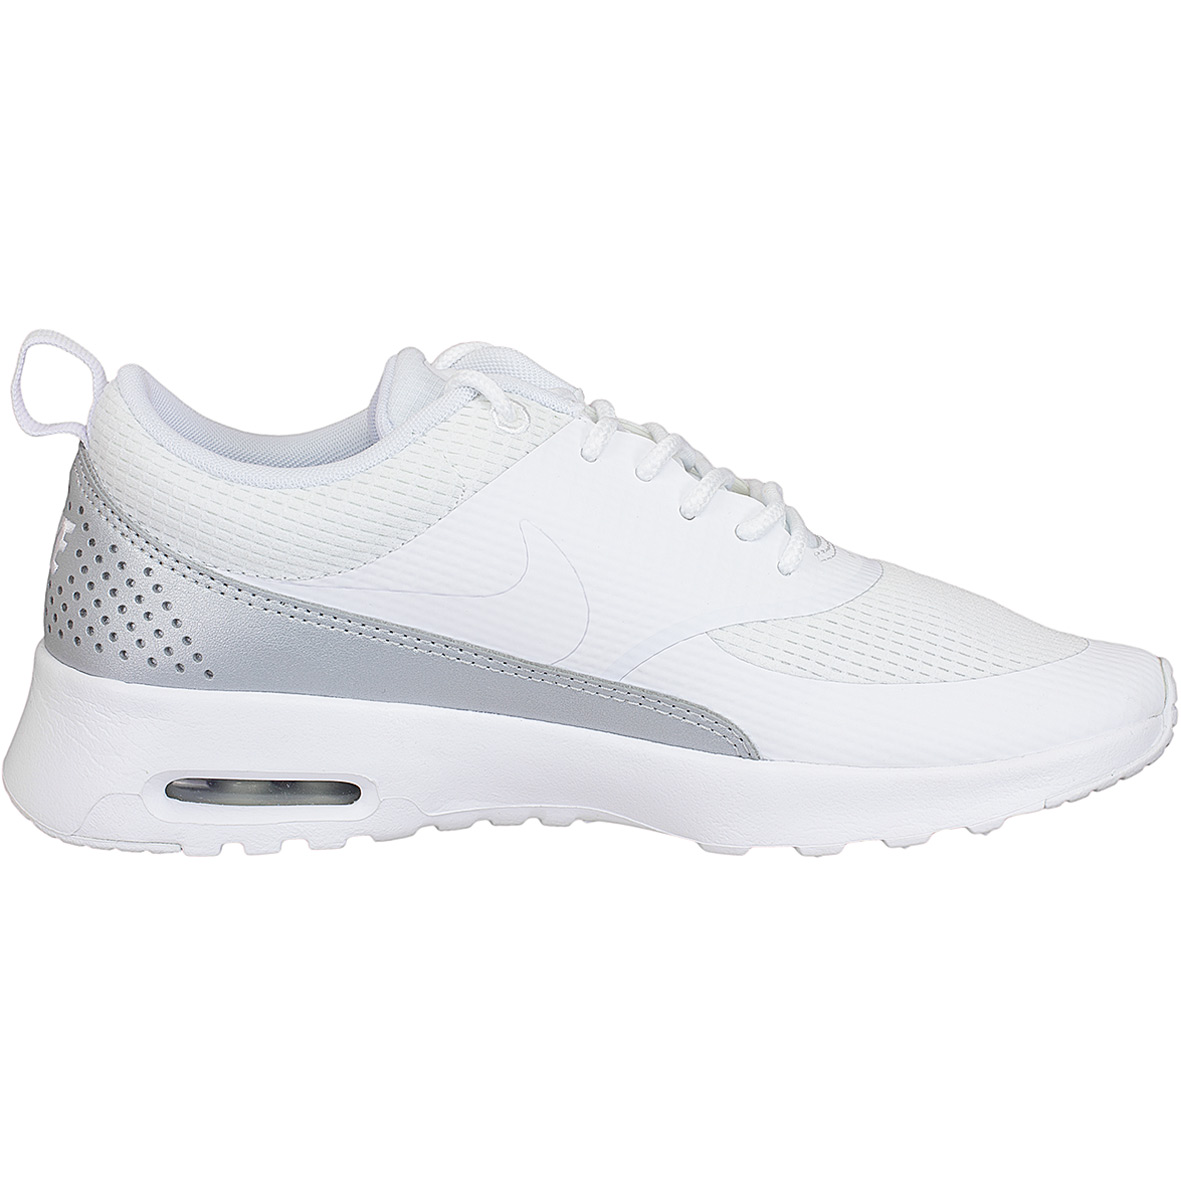 newest 00be2 e7c51 Nike Damen Sneaker Air Max Thea weißgrau